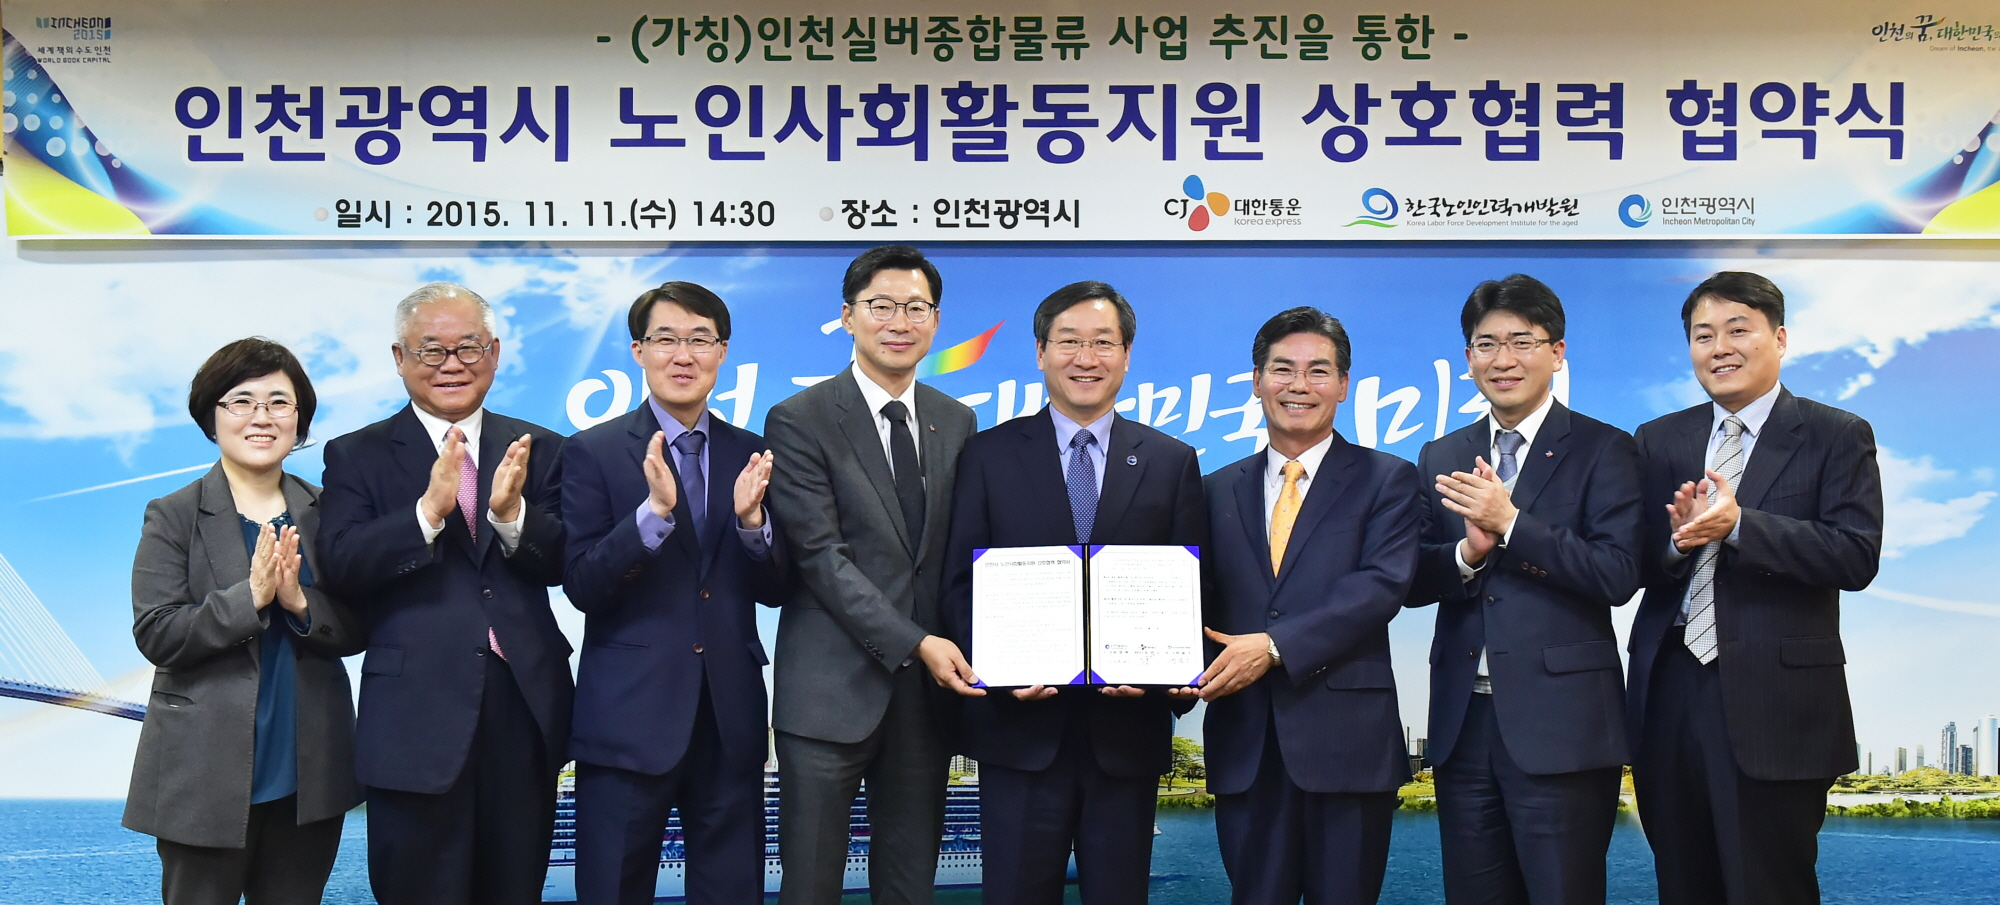 Incheon's city government signed an agreement with CJ Korea Express and the Korea Labor Force Development Institute for the Aged to cooperate on carrying forward the 'Incheon Silver Total Distribution Business'. (Image : Korea Labor Force Development Institute for the Aged Homepage)